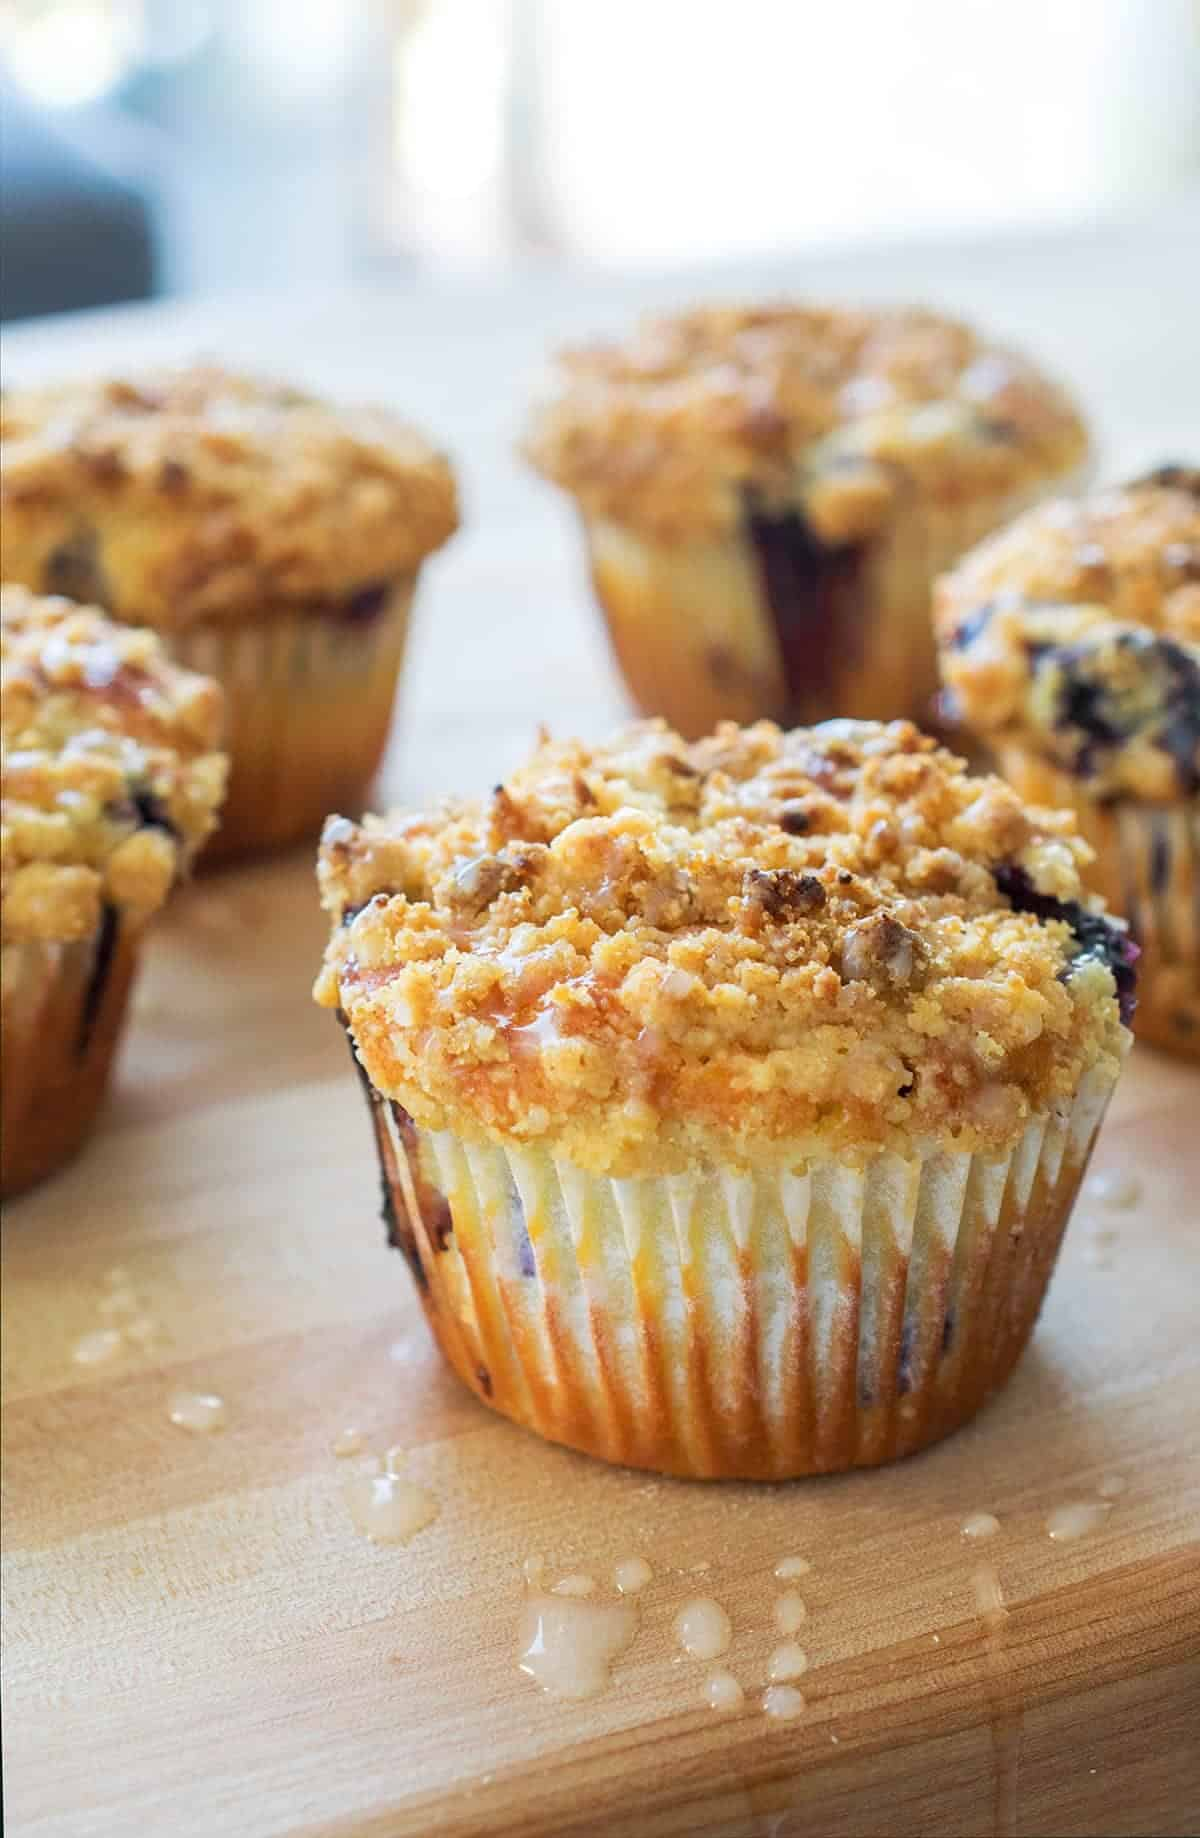 Lemon blueberry muffins with crumb topping on wood surface with sugar drips.